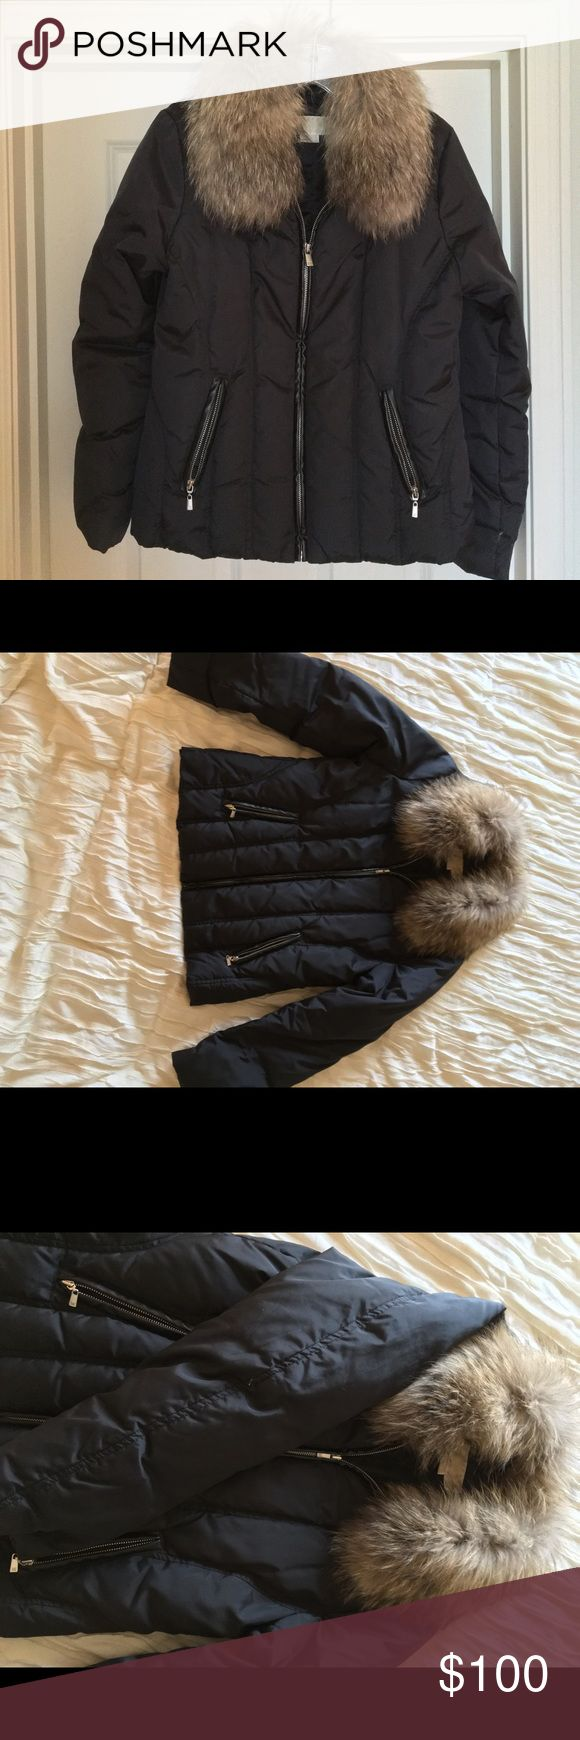 Michael Kors Raccoon fur collar puffer coat This black puffer coat will keep you warm and stylish this winter! The detachable collar is real raccoon fur, and is in excellent condition. The zippers all work. It's got a nice silhouette when worn, and is not too bulky. Michael Kors Jackets & Coats